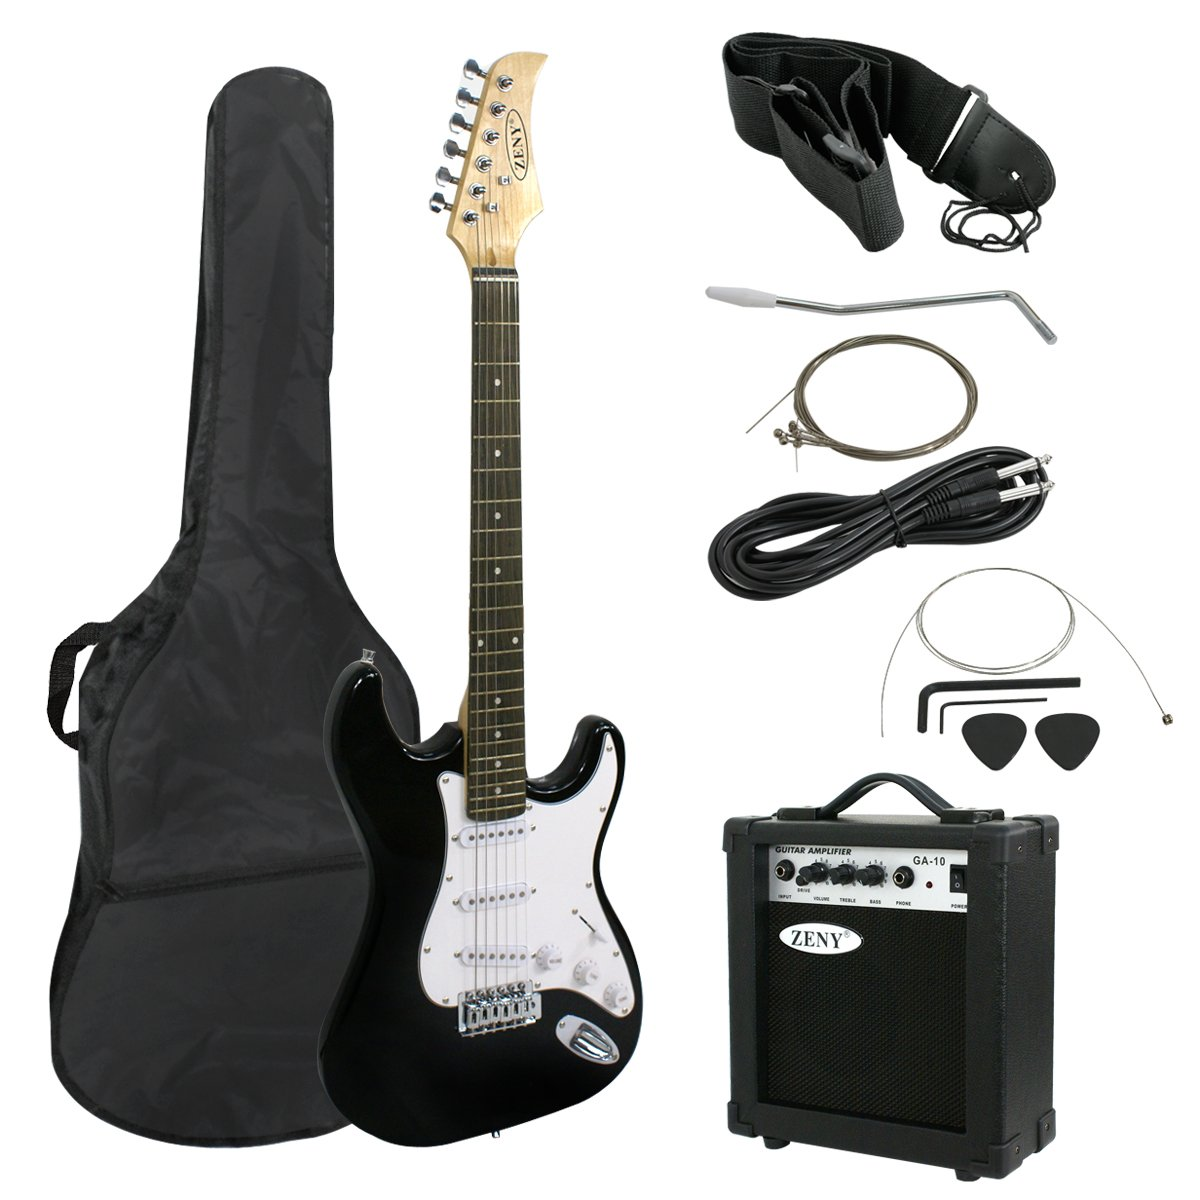 Zeny 39 Full Size Electric Guitar With Amp Case And Input Jack Wiring Accessories Pack Beginner Starter Package Black Musical Instruments